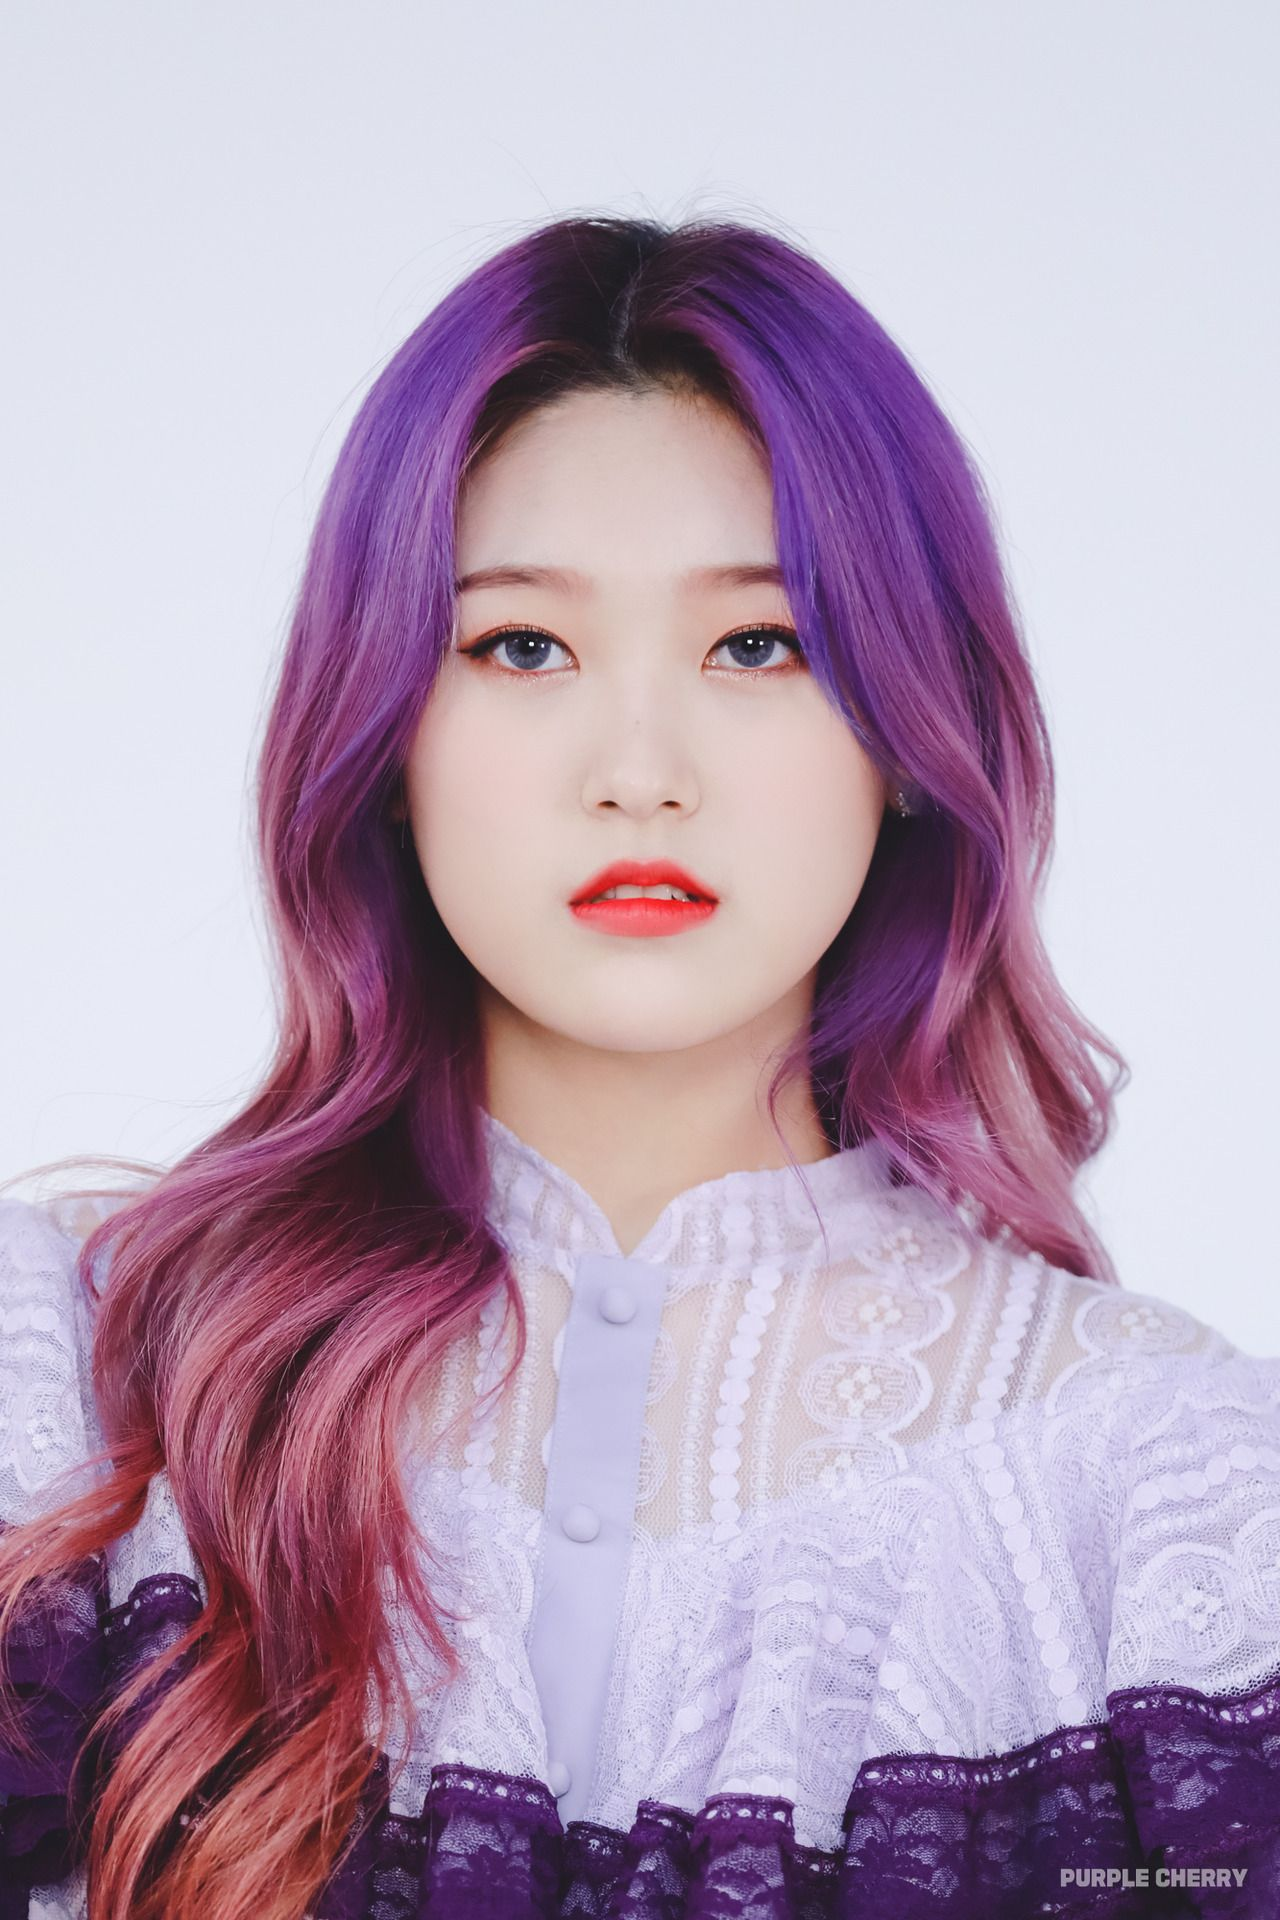 Pin By J3ss3 On Choerry Girl With Purple Hair Purple Hair Hair Icon